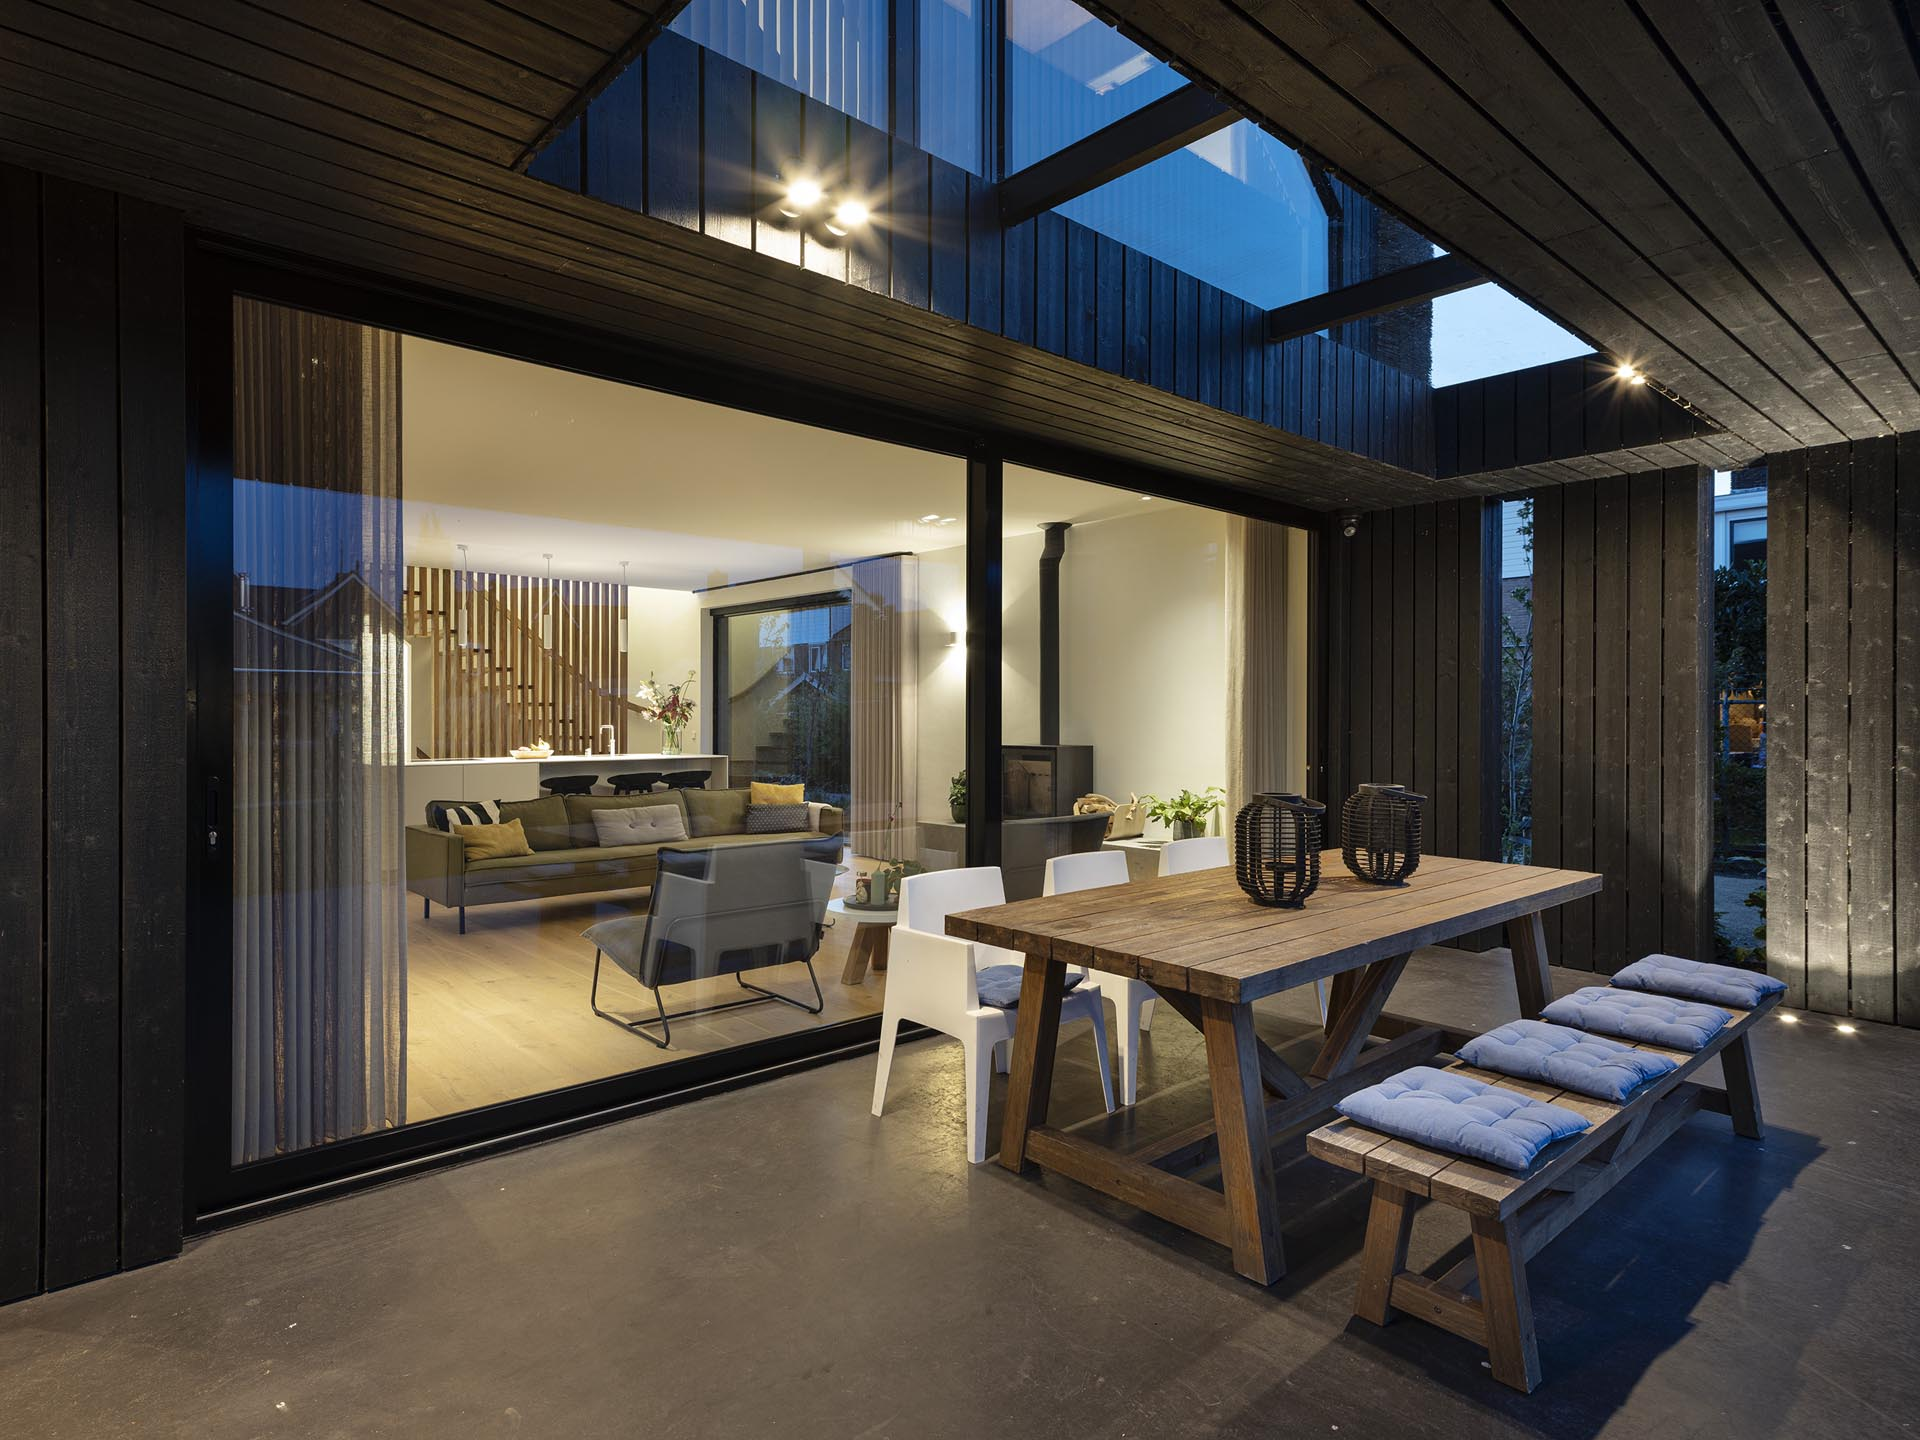 A modern home with an outdoor dining patio.